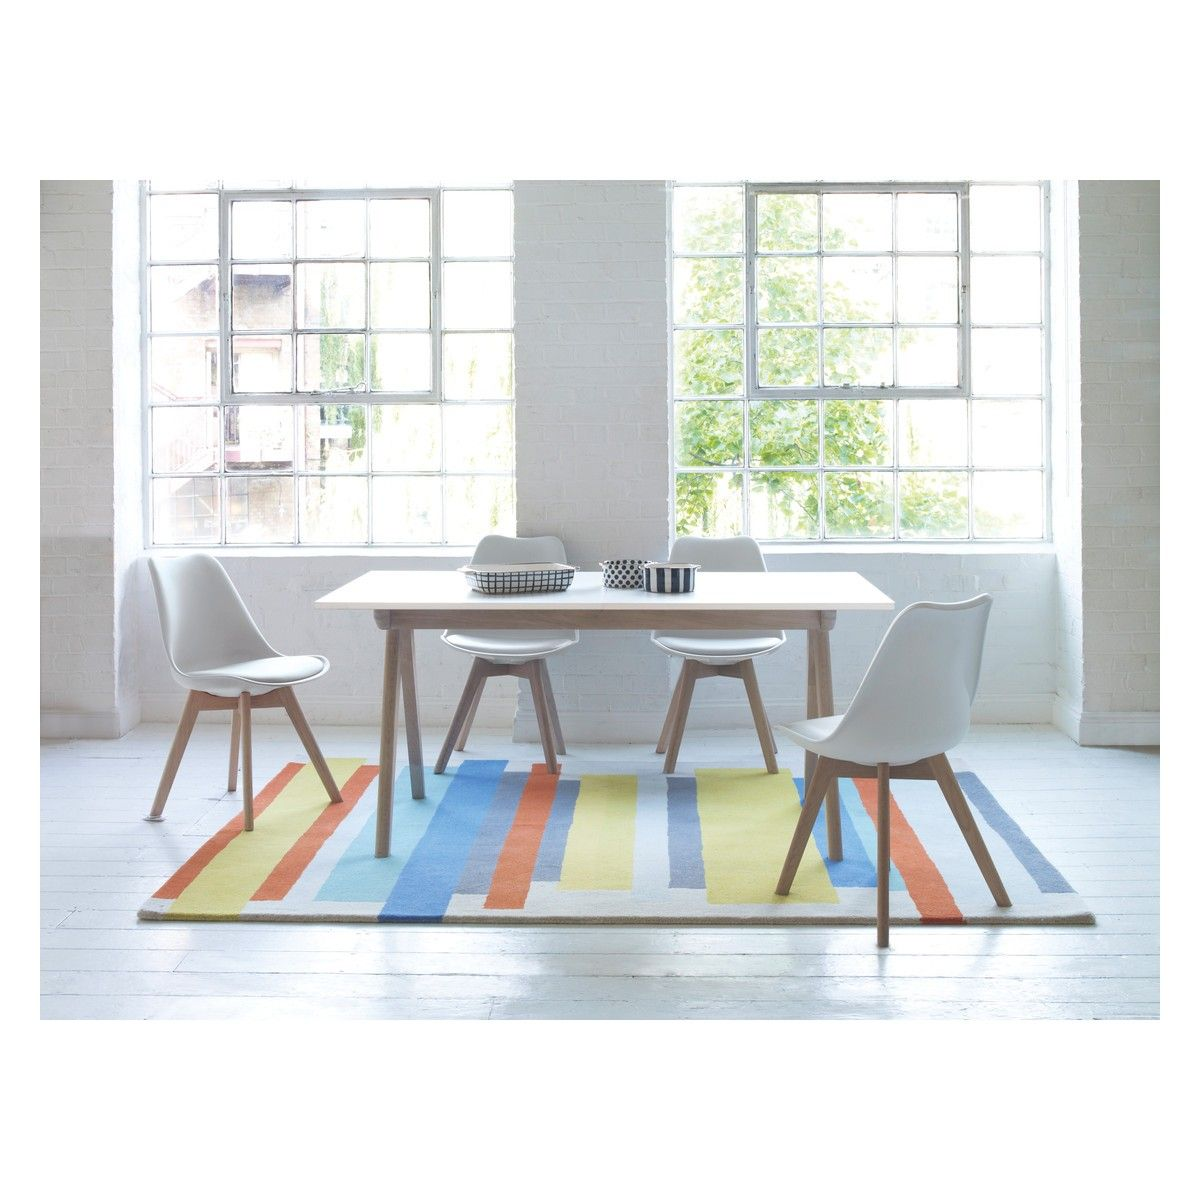 JERRY Dining set with white extending table and 4 white chairs